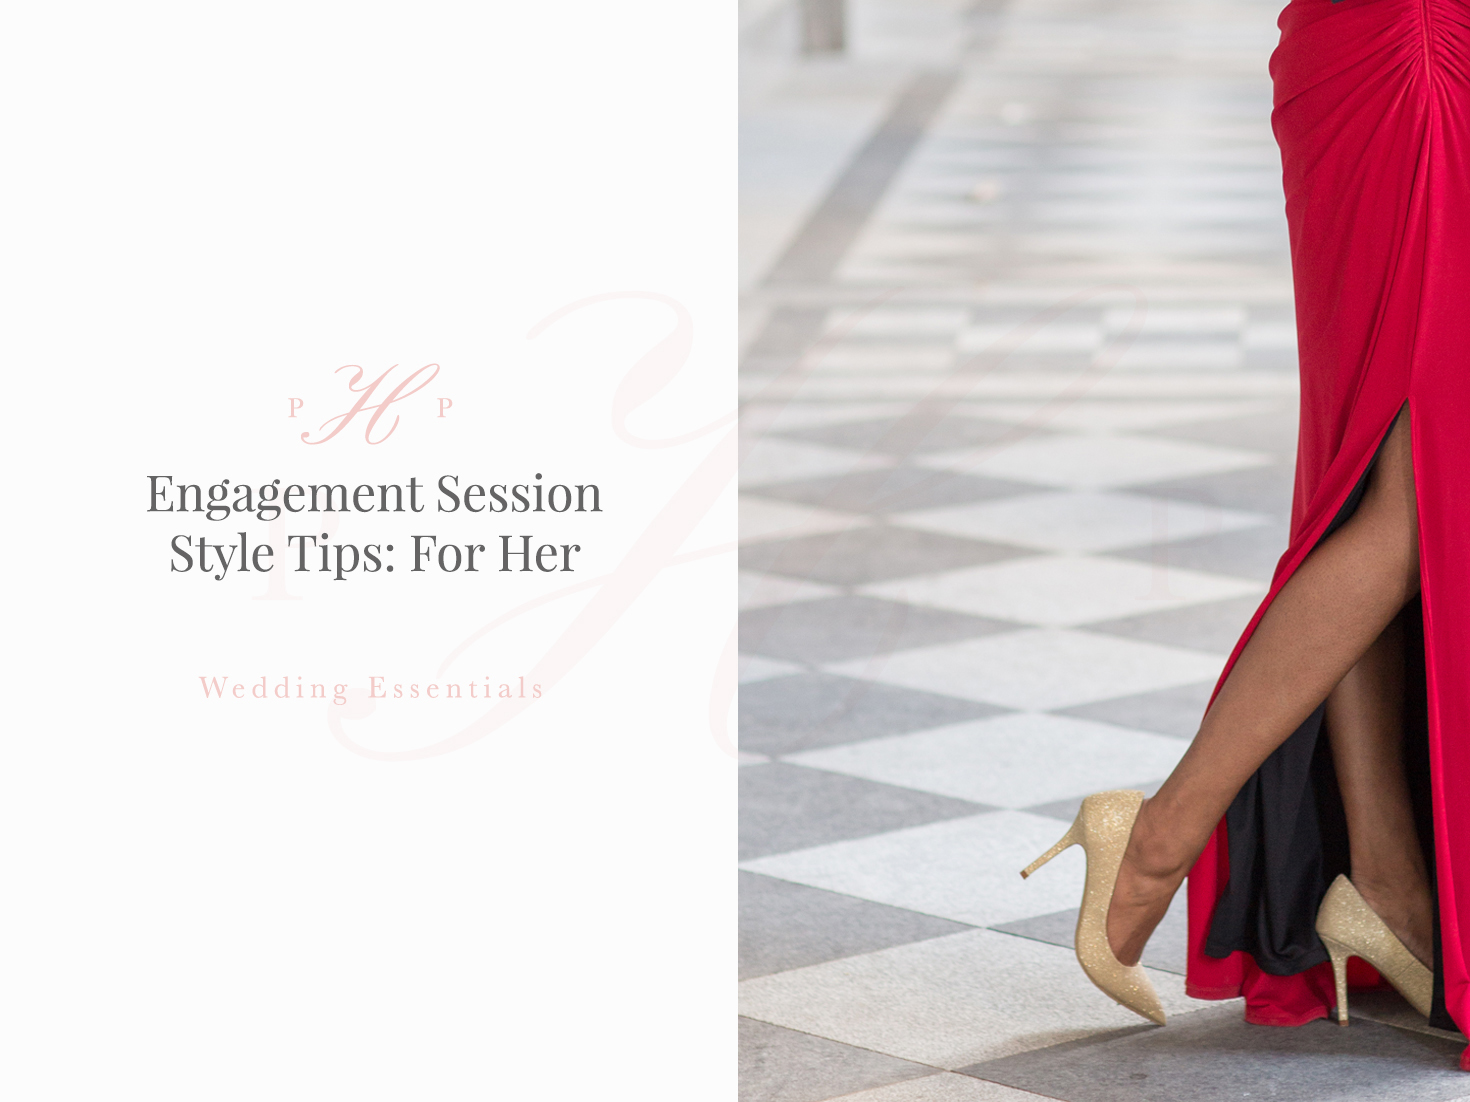 Engagement Session Style Tips: For Her